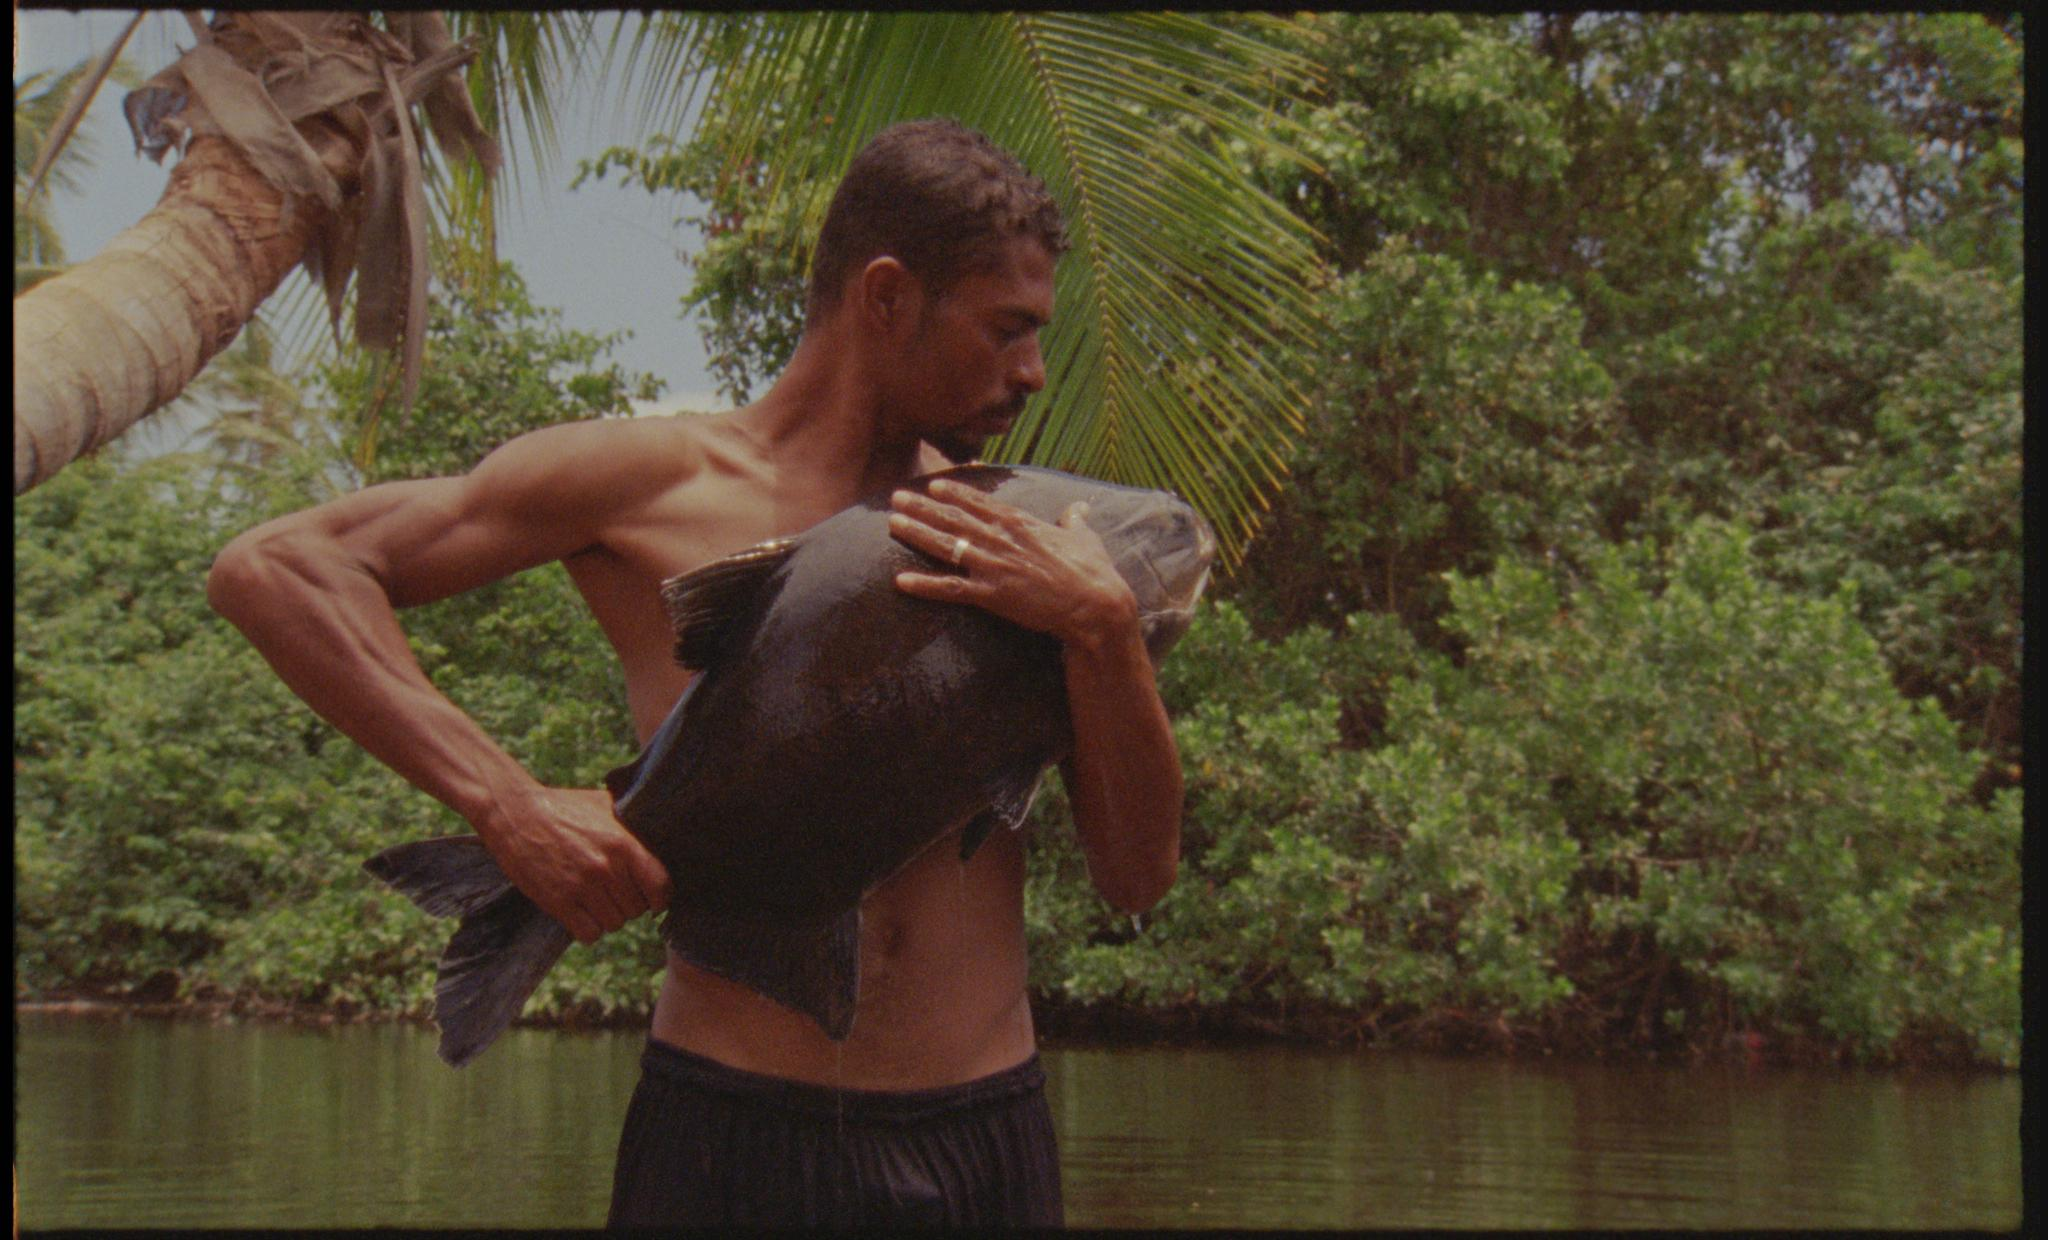 A man with tan skin and muscled arms holds a large fish to his bare chest. A palm tree and lush greenery line a body of water behind him.